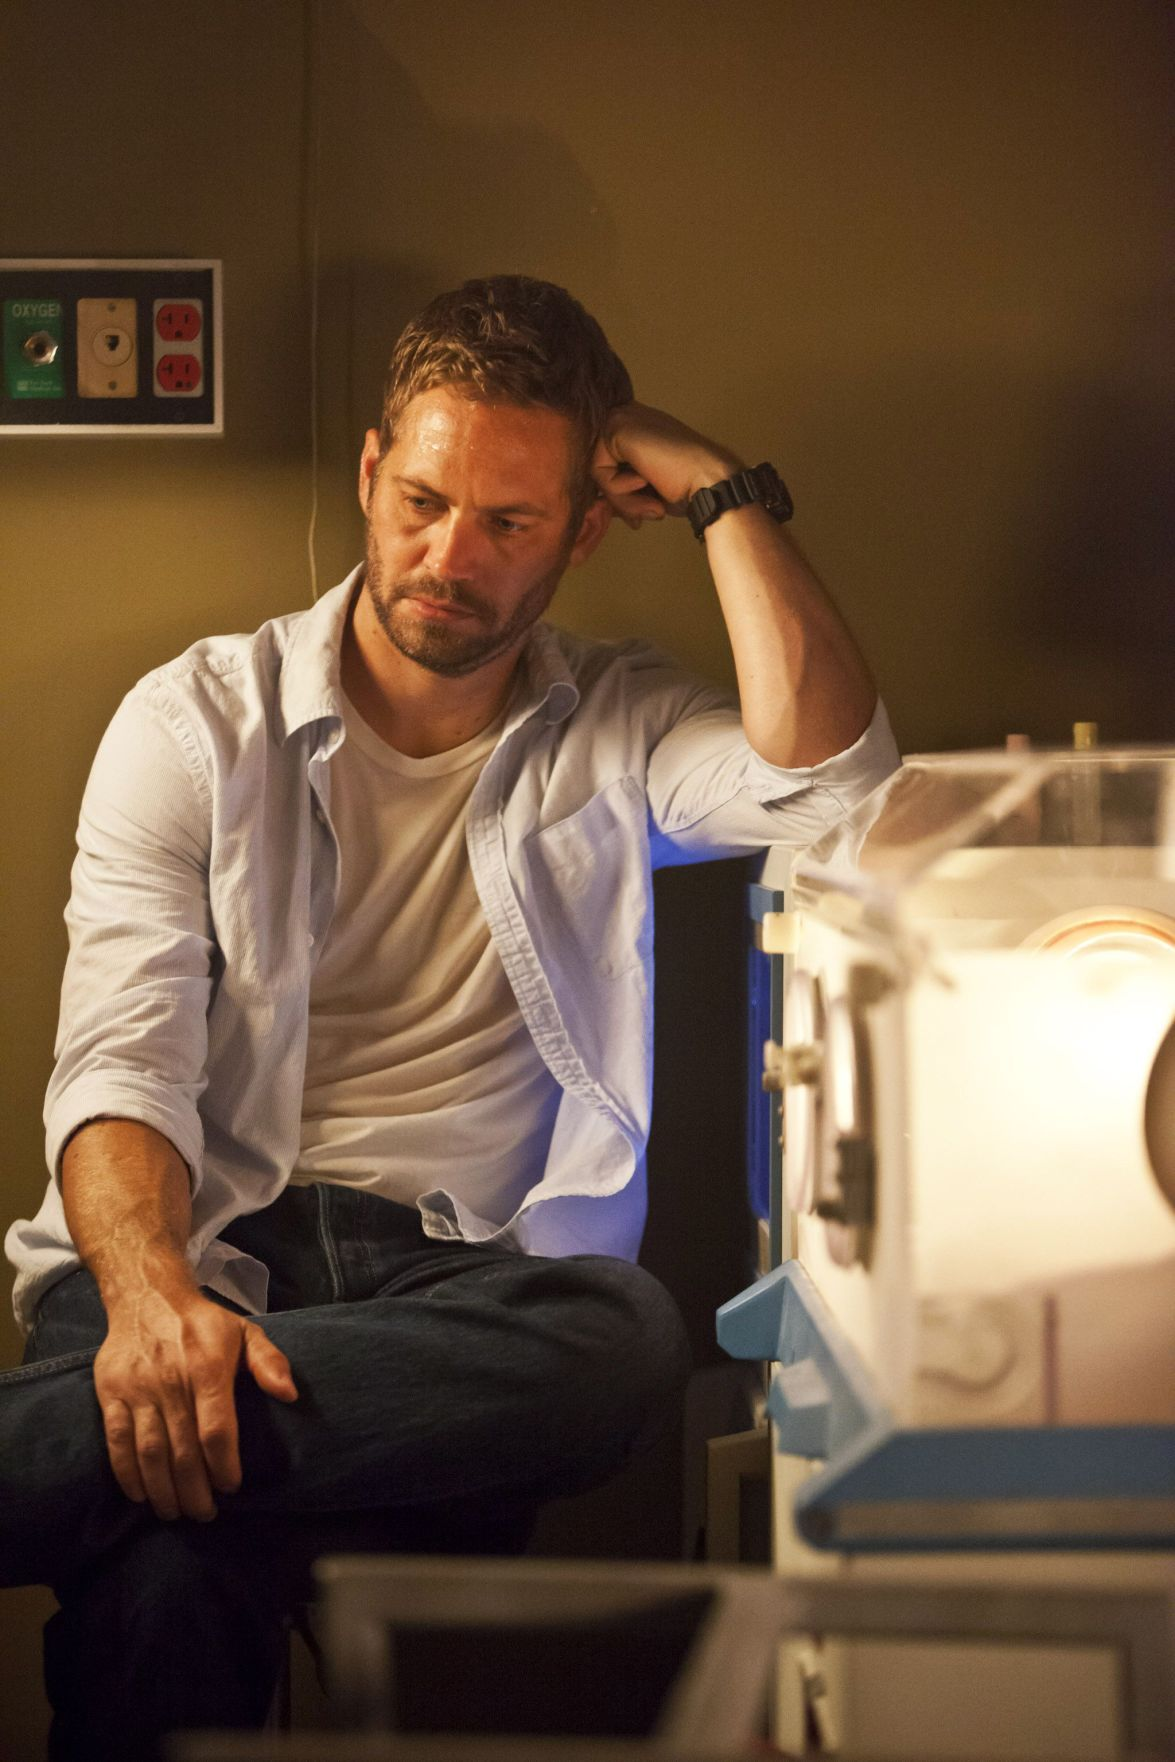 'Fast & Furious 7' production delayed after star Paul Walker's death